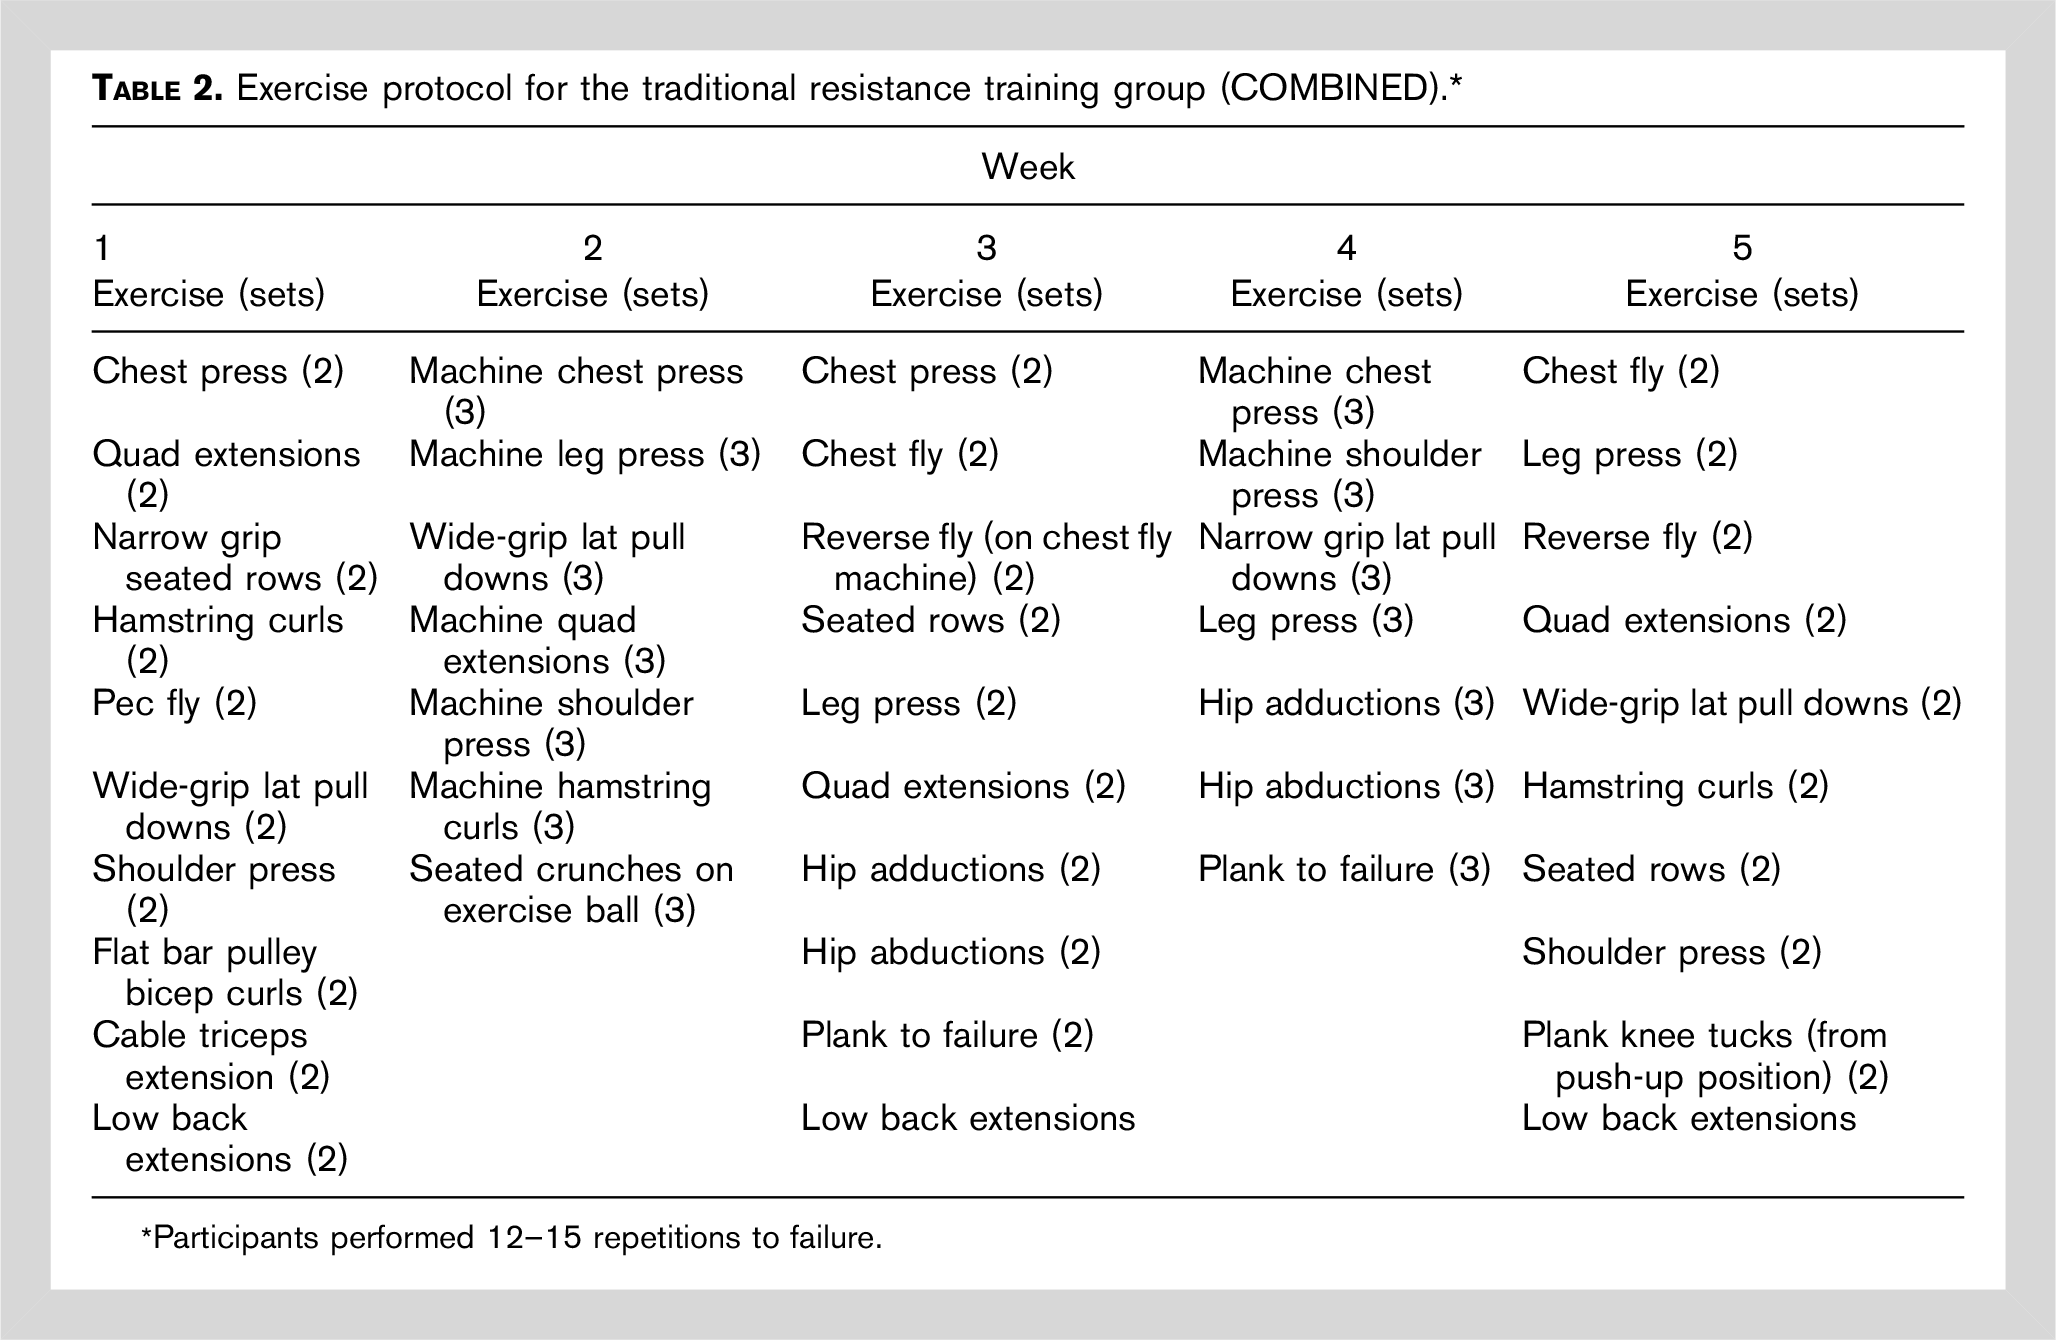 Traditional resistance training exercise protocol